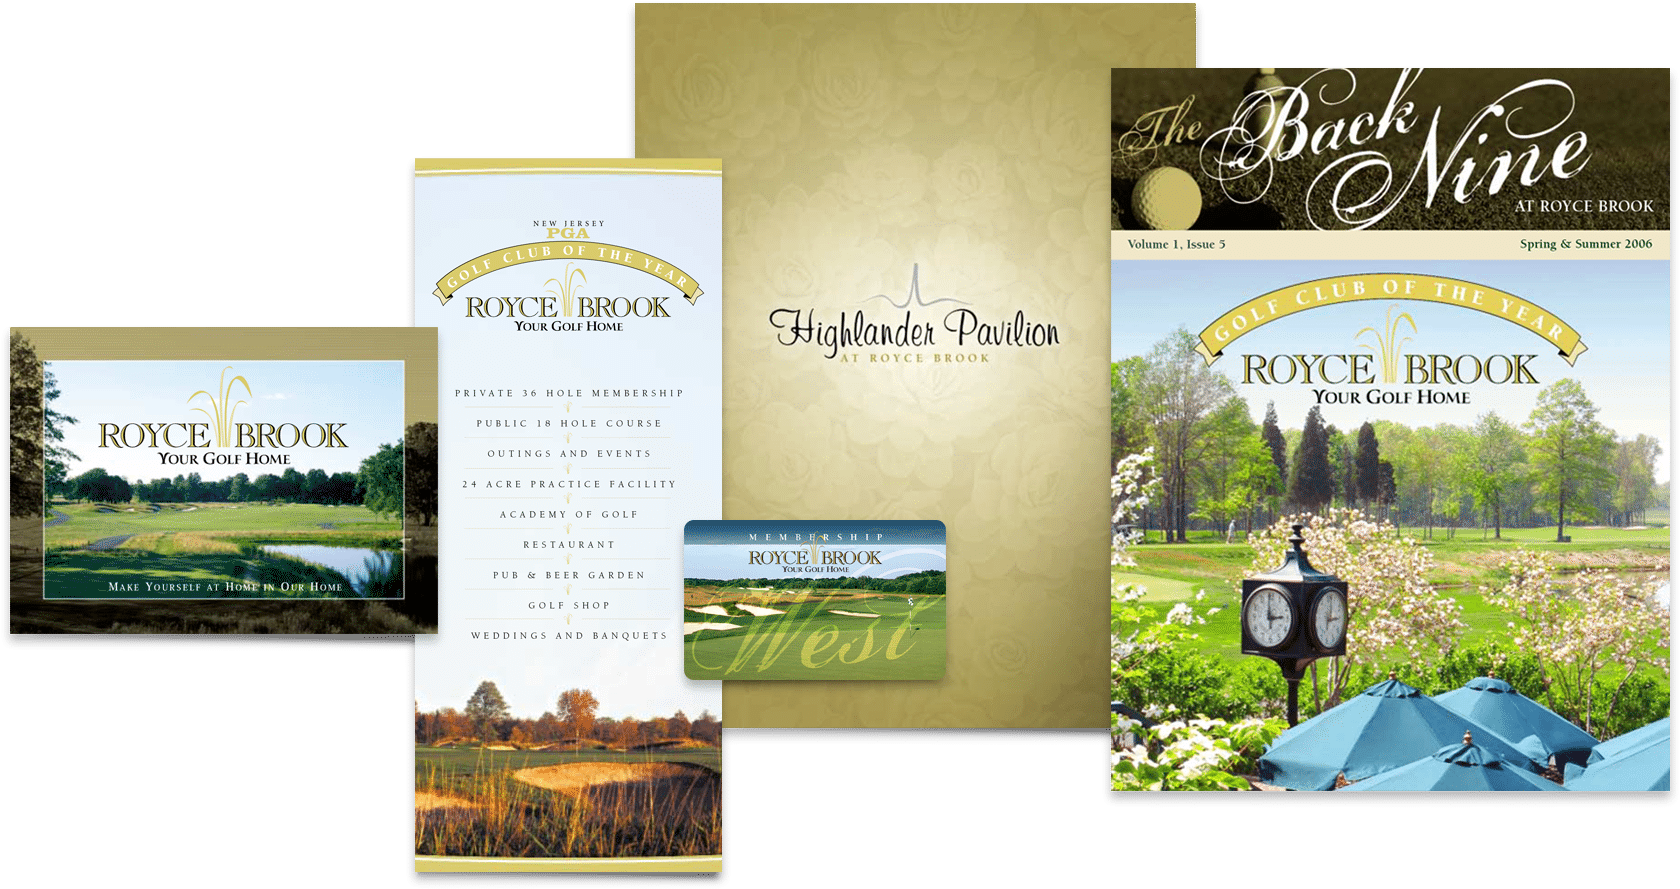 Collateral design examples by a NJ branding specialist